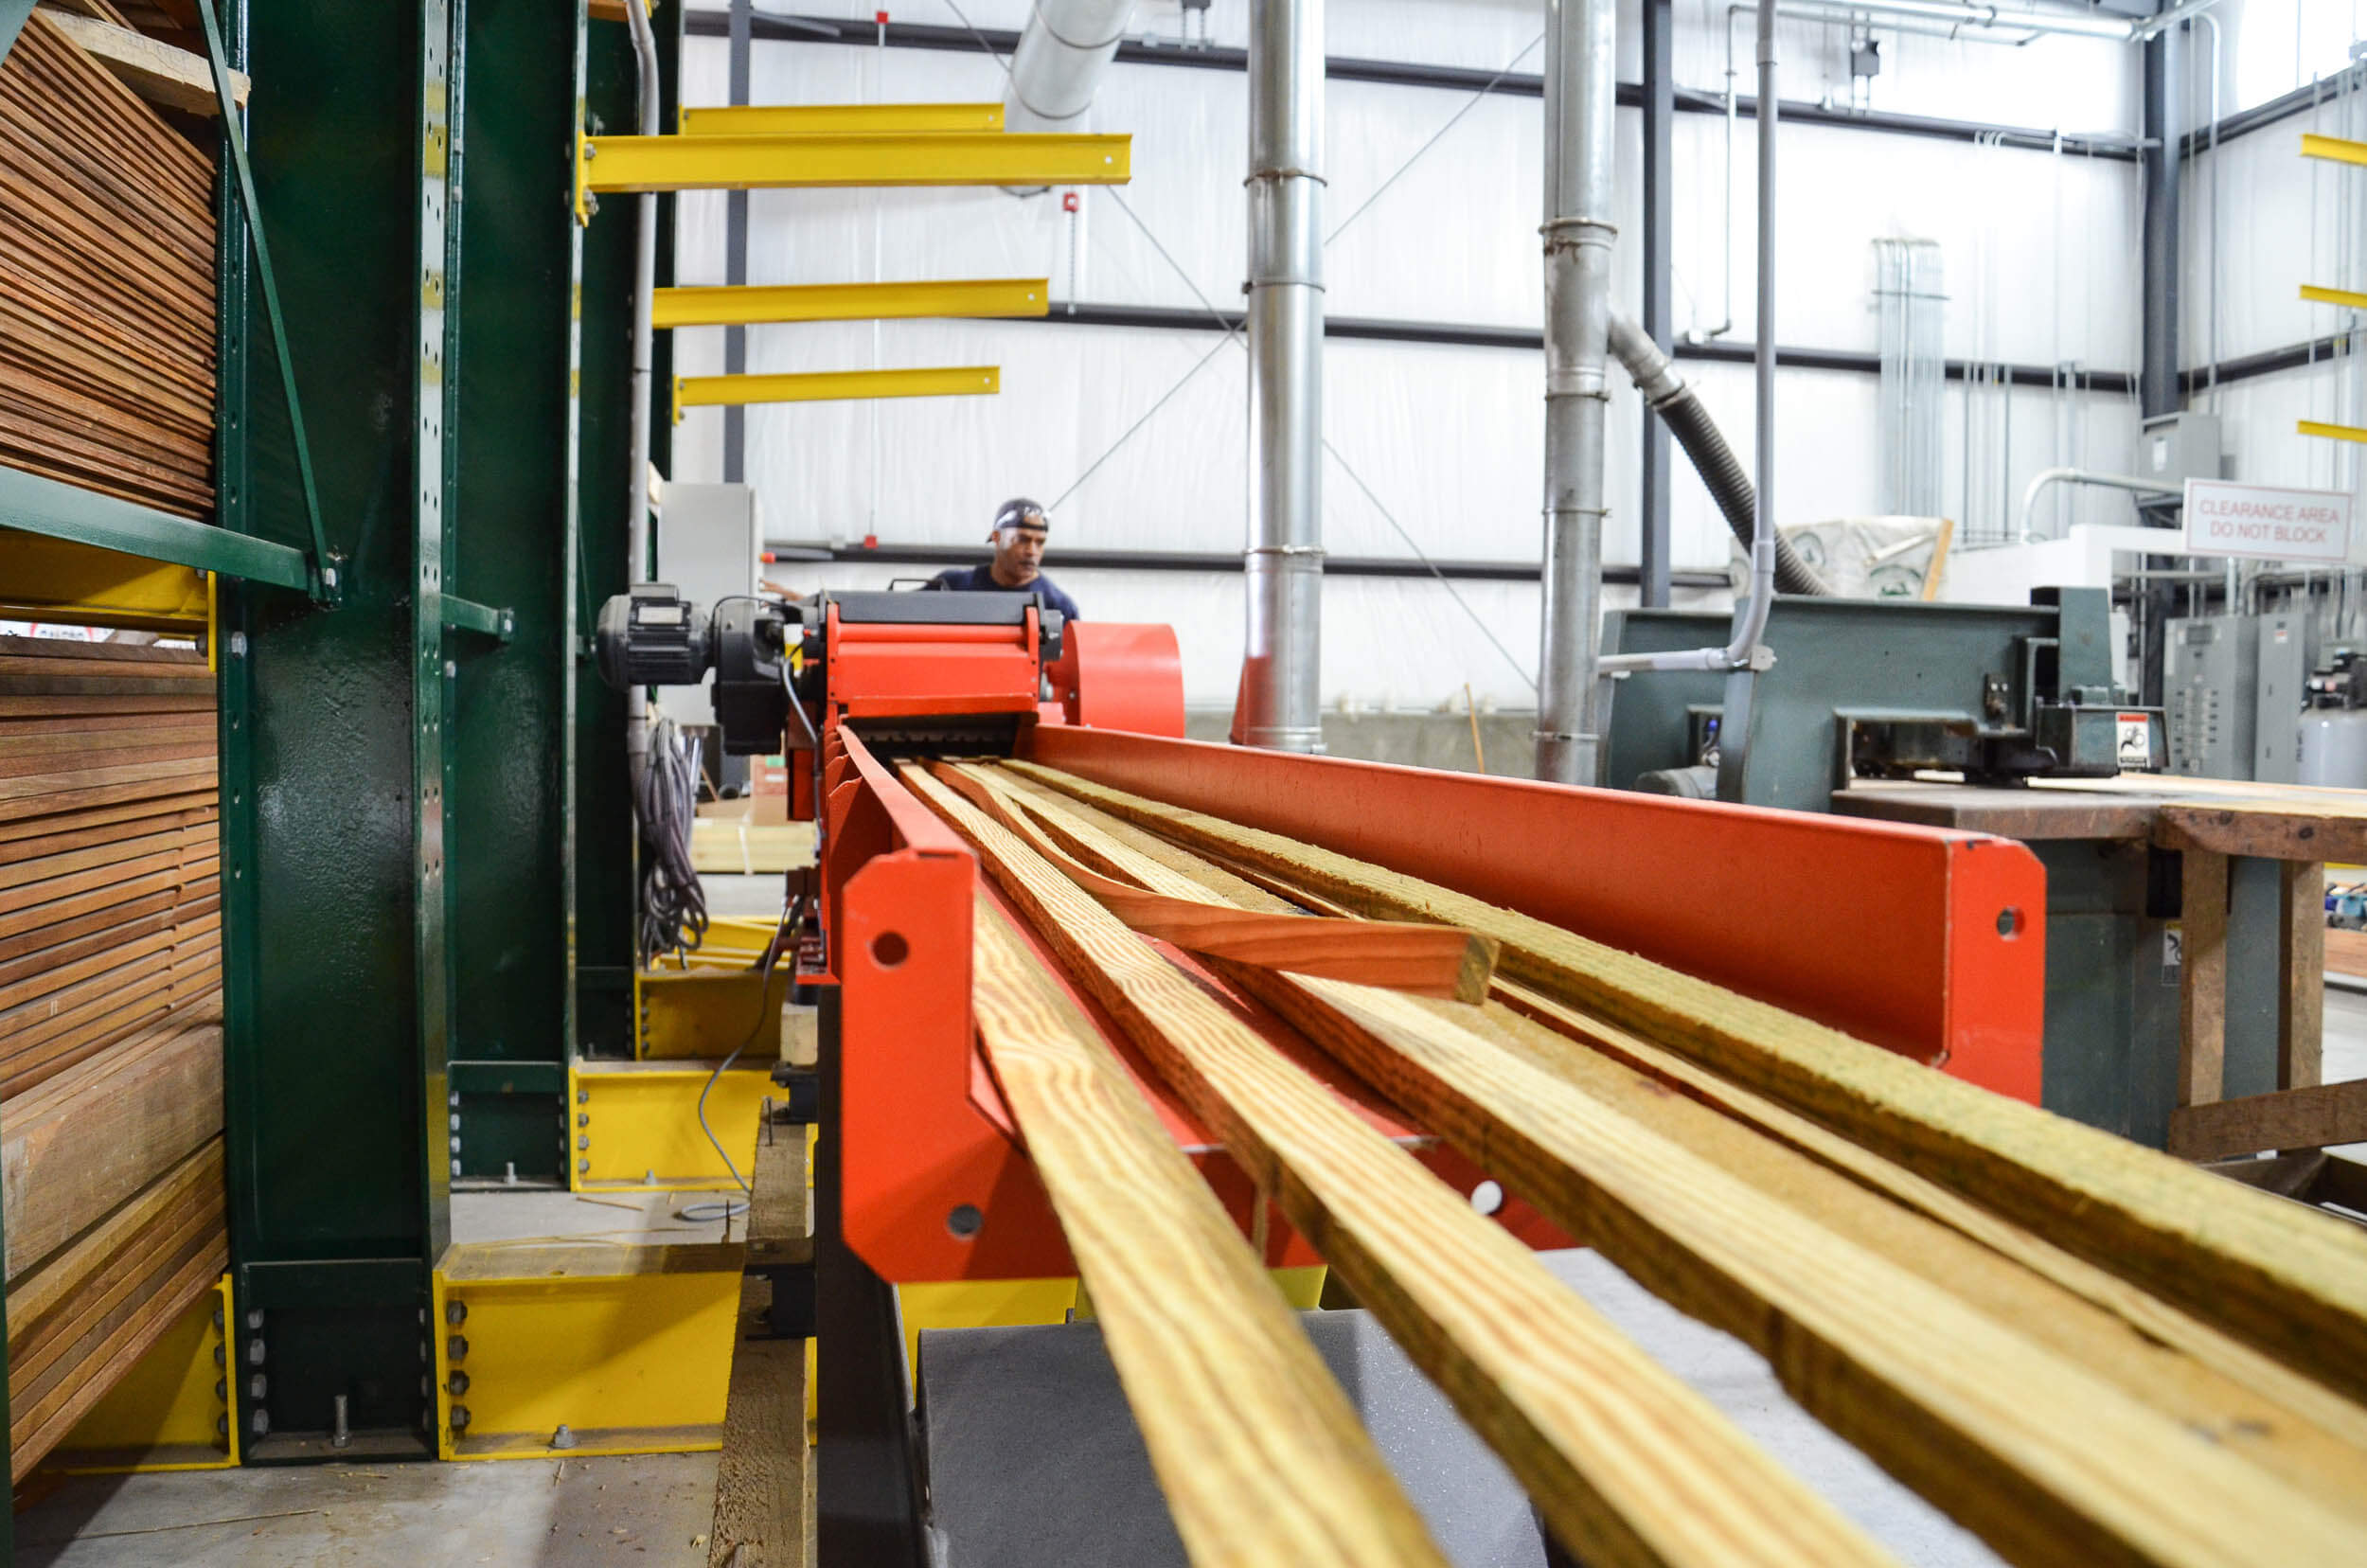 horizontal infeed conveyor with rippings